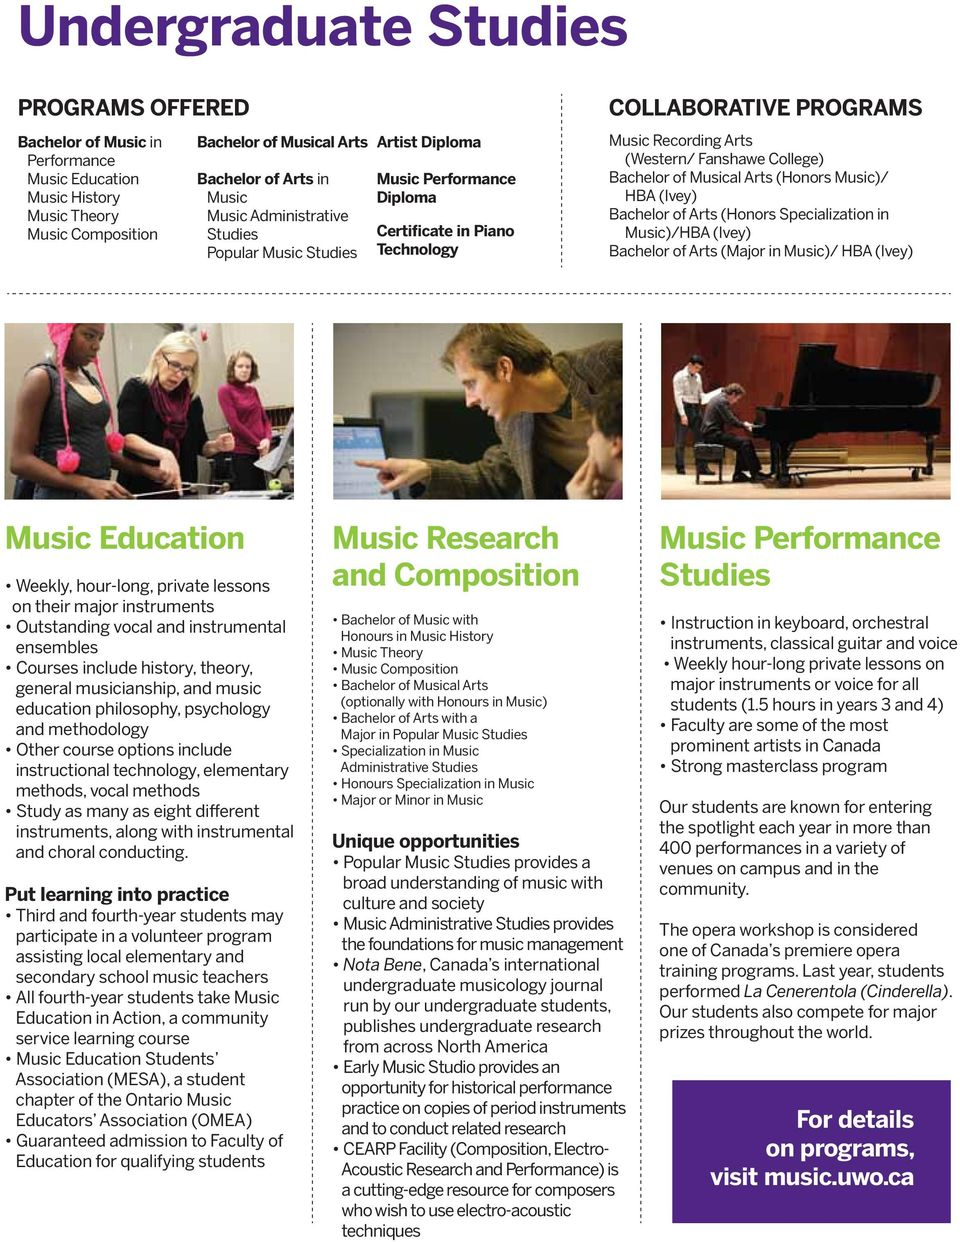 of Musical Arts (Honors Music)/ HBA (Ivey) Bachelor of Arts (Honors Specialization in Music)/HBA (Ivey) Bachelor of Arts (Major in Music)/ HBA (Ivey) Music Education Weekly, hour-long, private